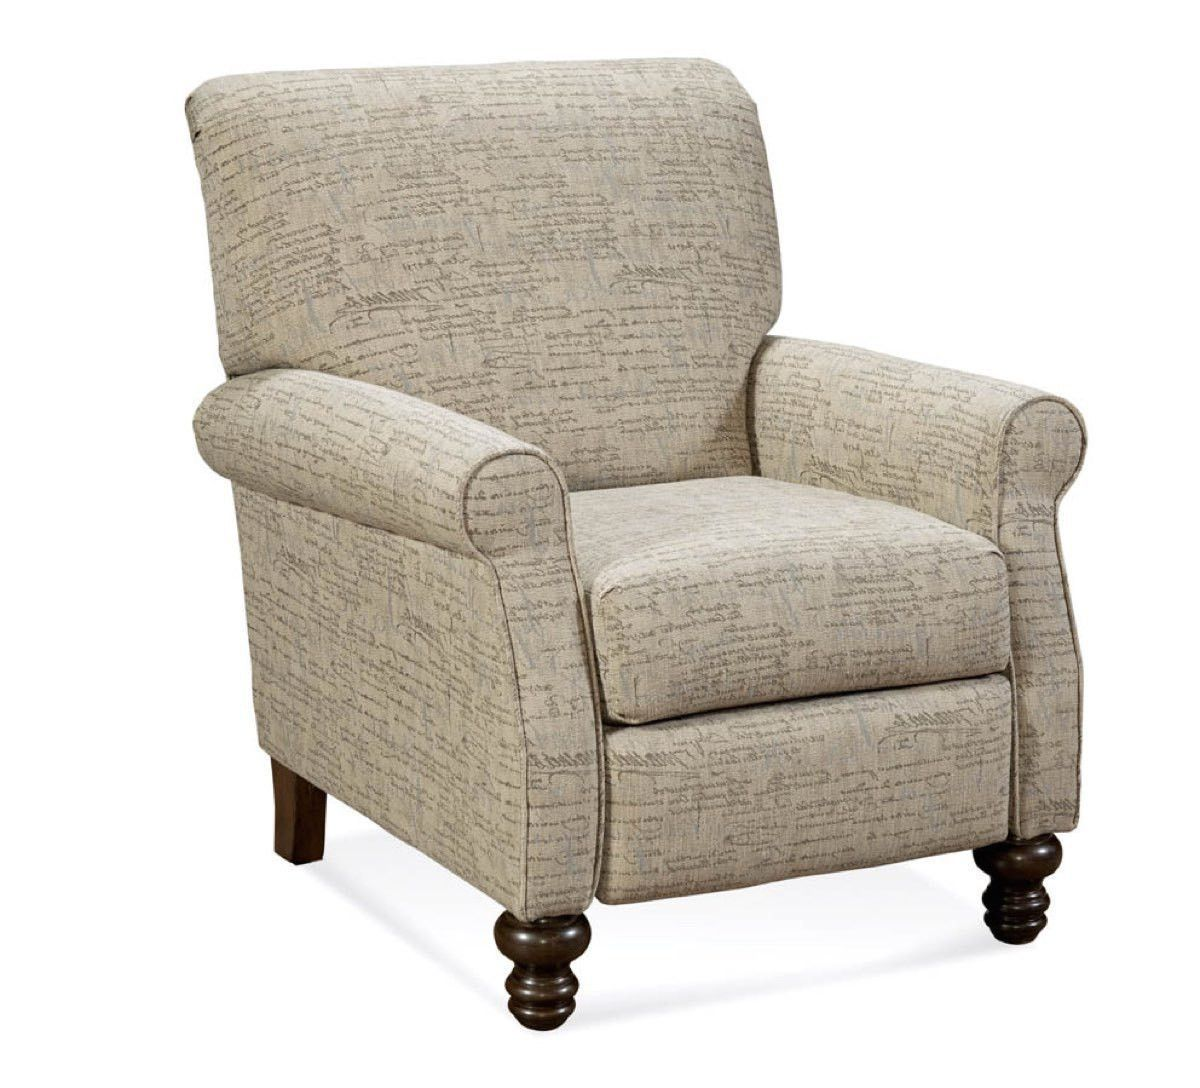 Small Recliners For Bedroom Small Recliners For Bedroom Small Recliners Bedroom Walworth